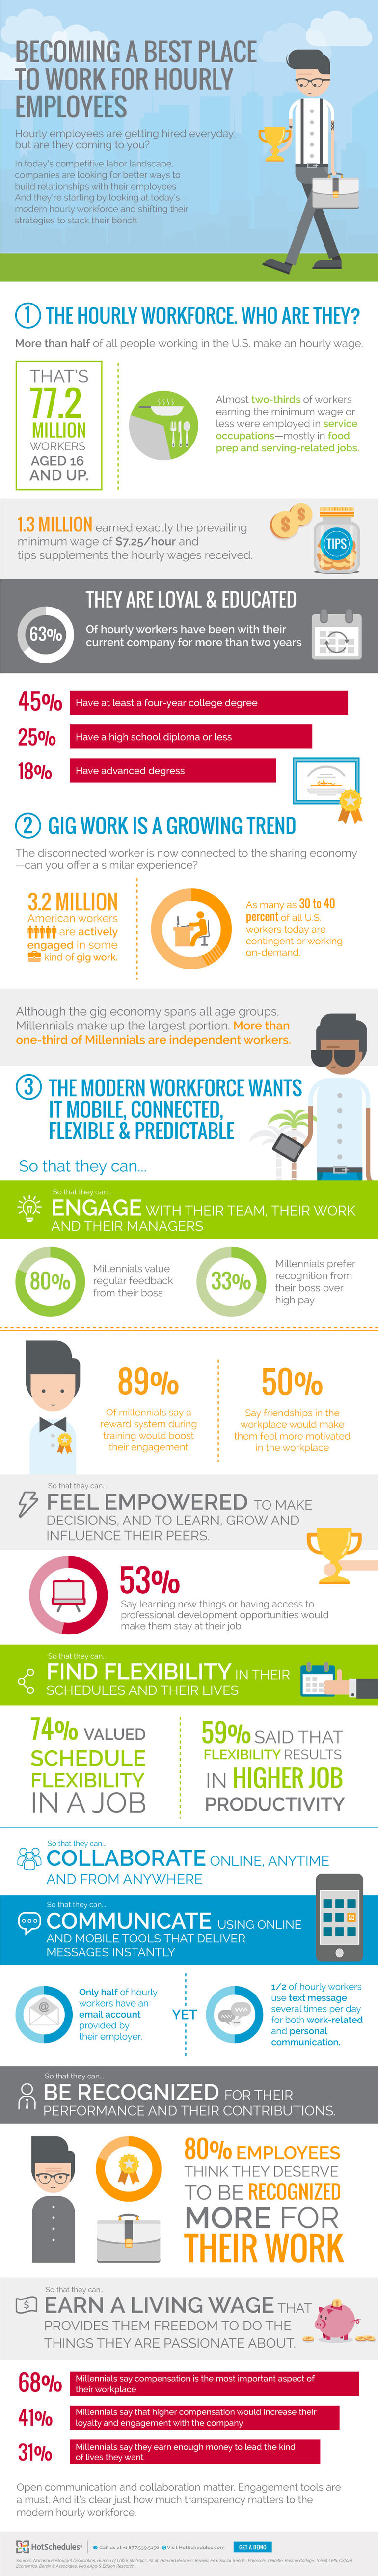 Infographic Becoming a Best Place to Work For Hourly Workers FINAL Optimized  1